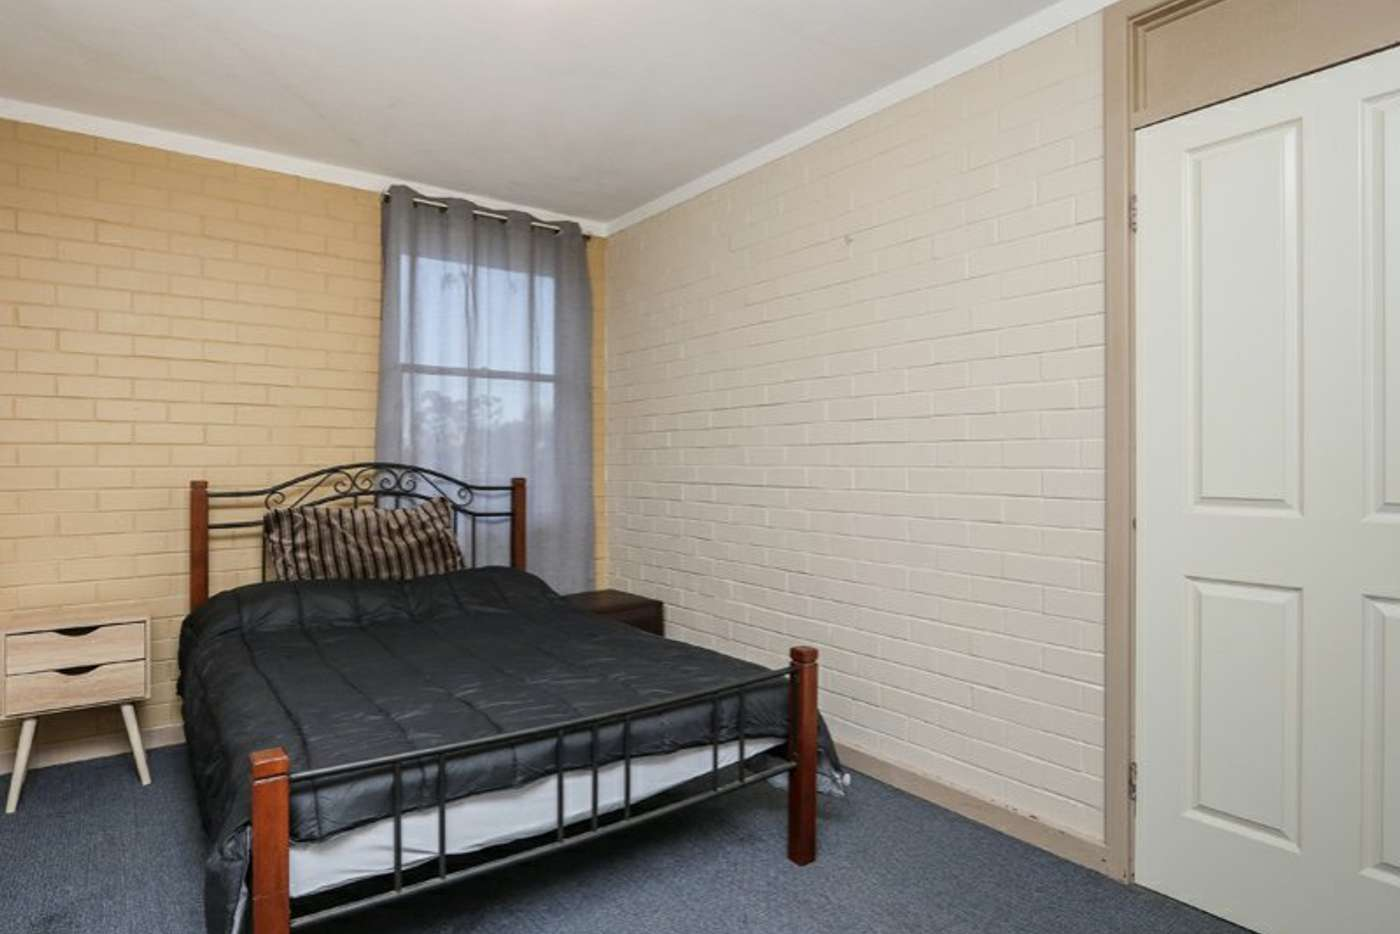 Sixth view of Homely apartment listing, 31/227 Vincent Street, West Perth WA 6005